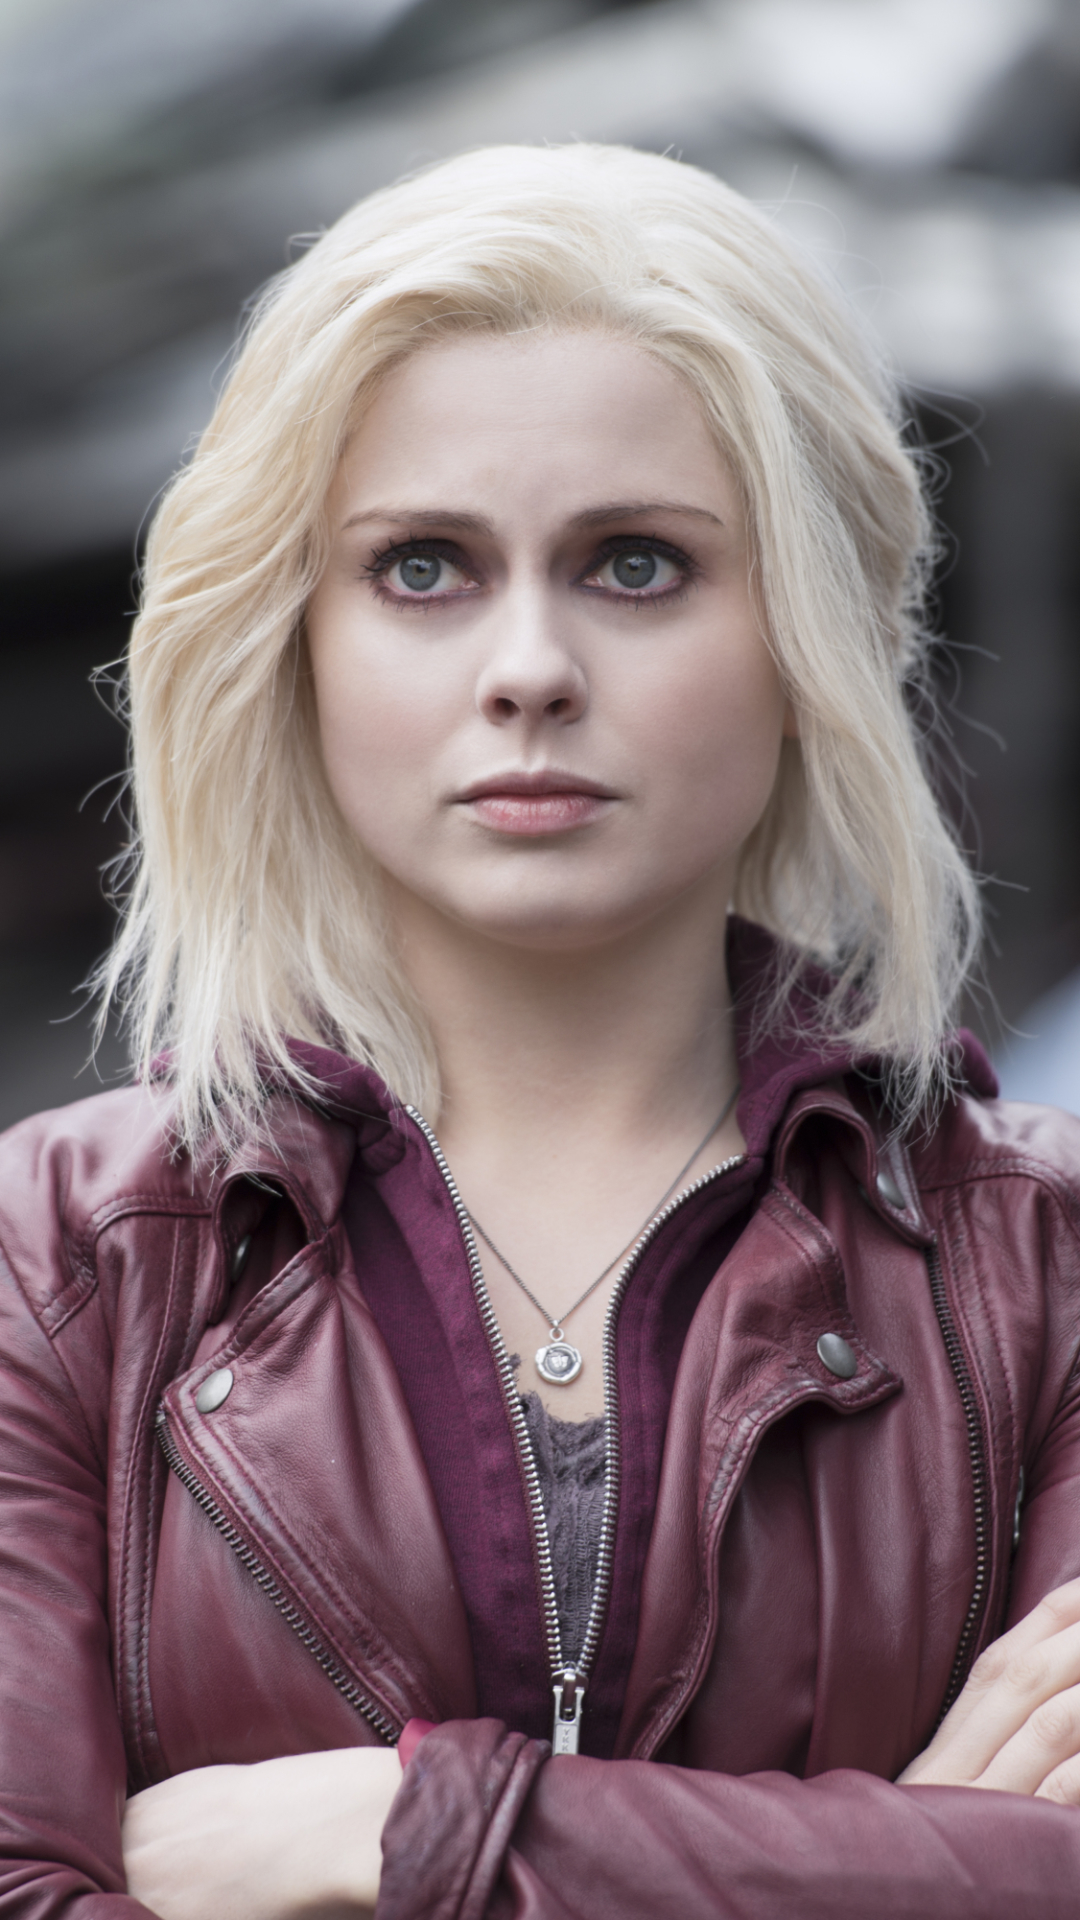 tv show/izombie (1080x1920) wallpaper id: 628490 - mobile abyss